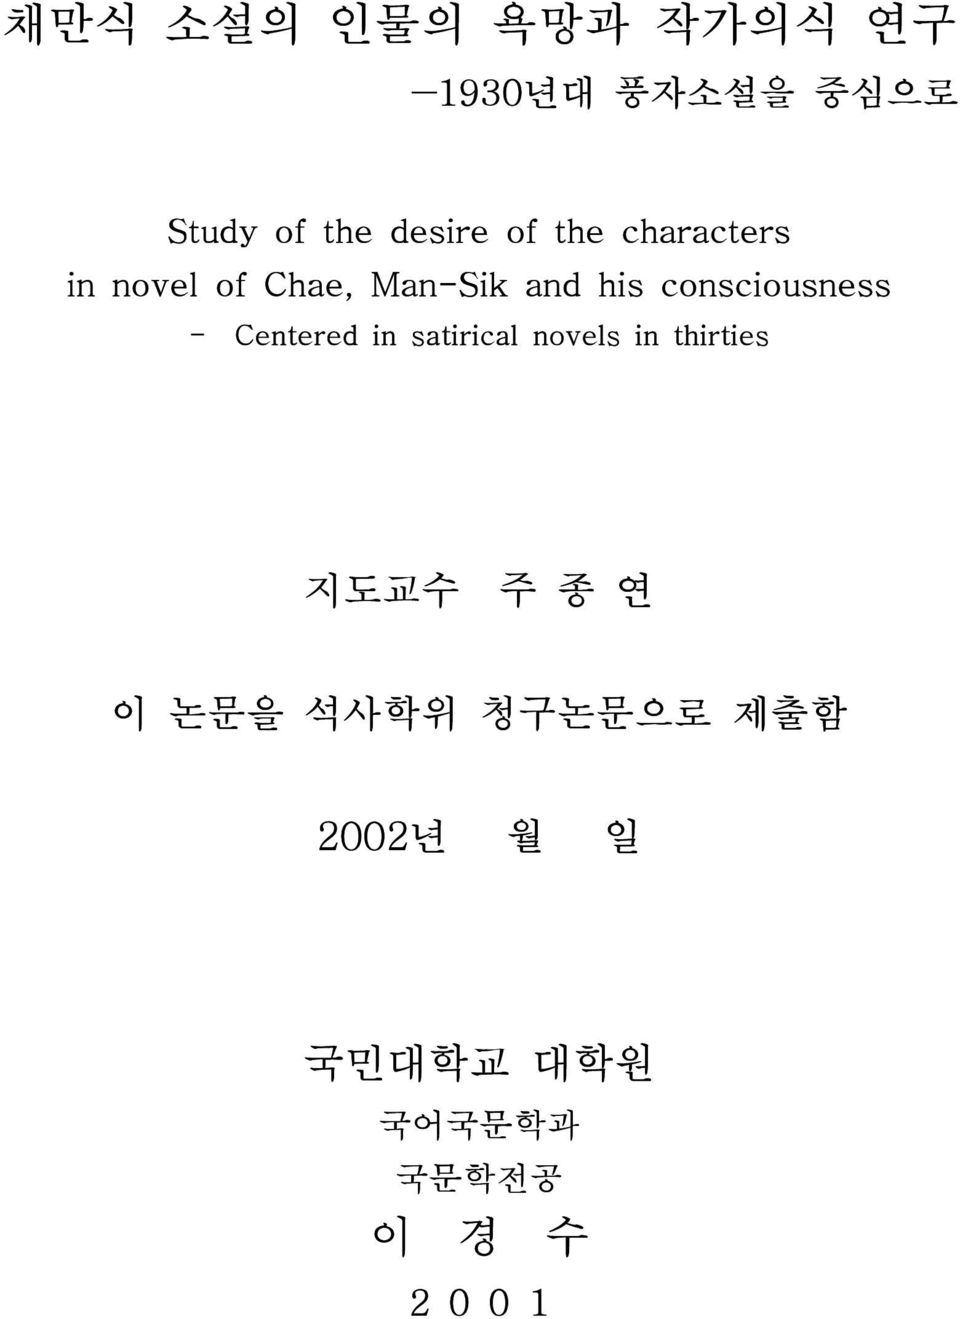 consciousness - Centered in satirical novels in thirties 지도교수